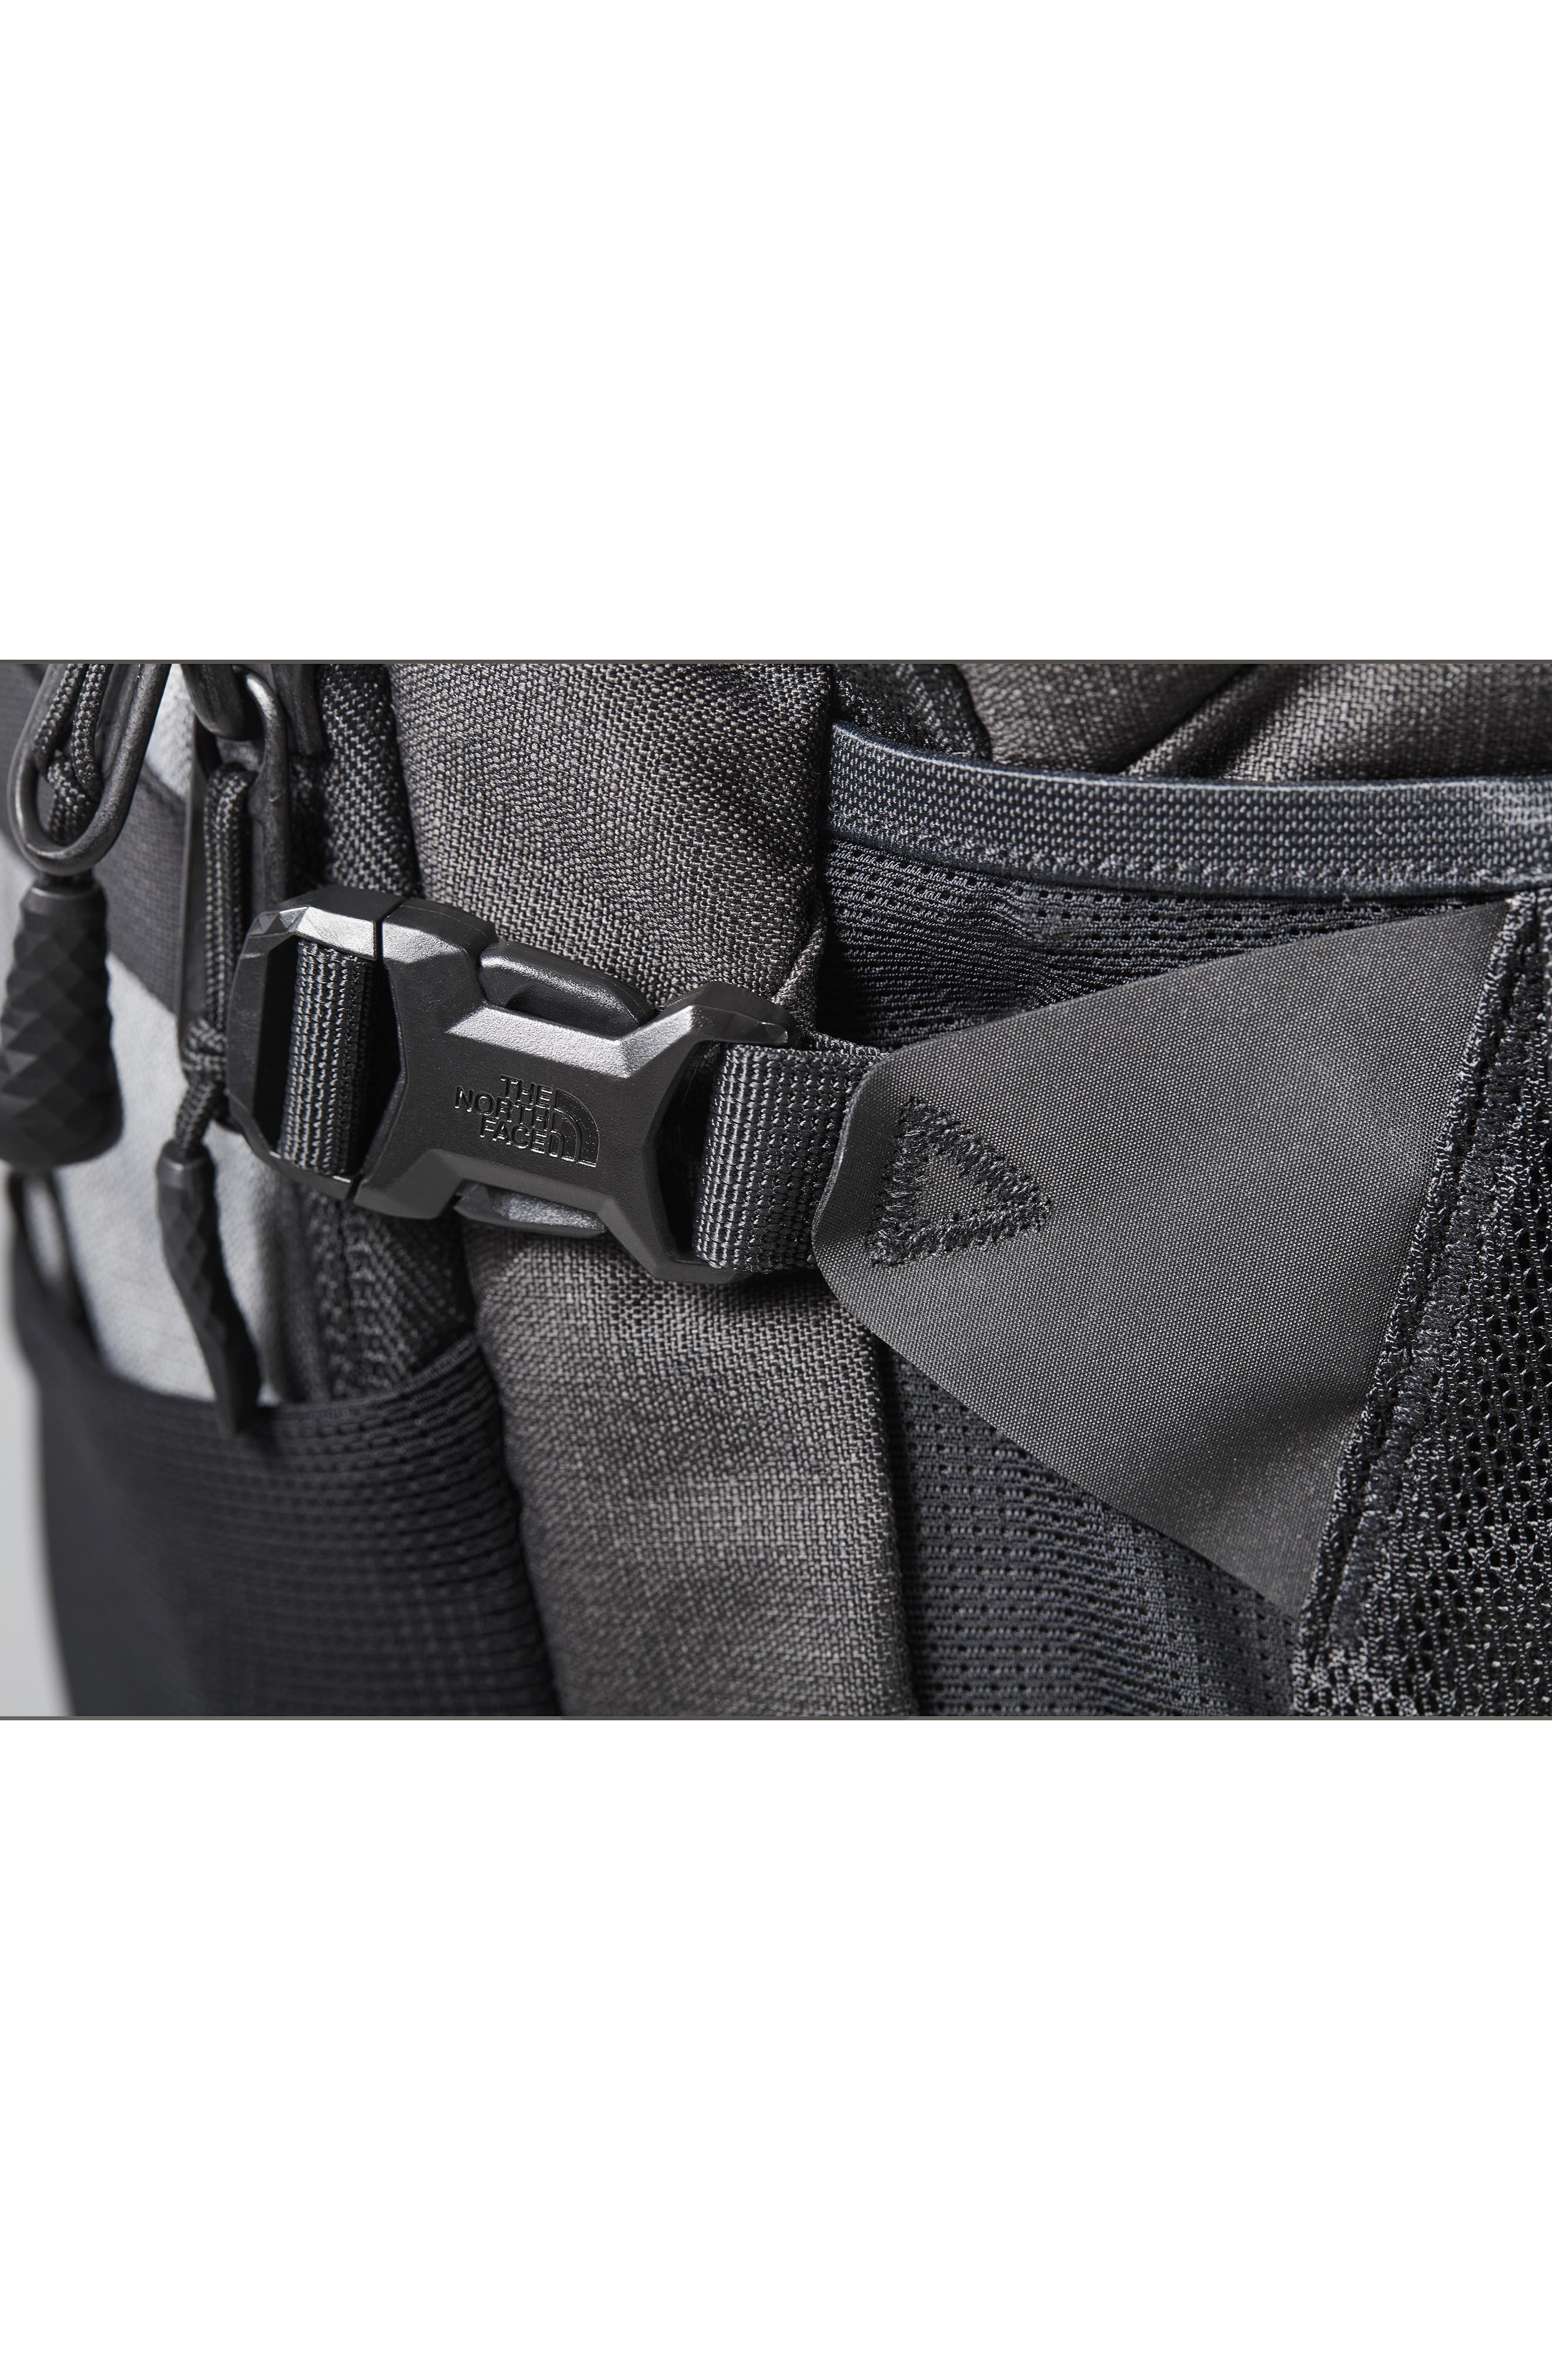 Recon Backpack,                             Alternate thumbnail 10, color,                             HIGH RISE GREY HEATHER/ GREY